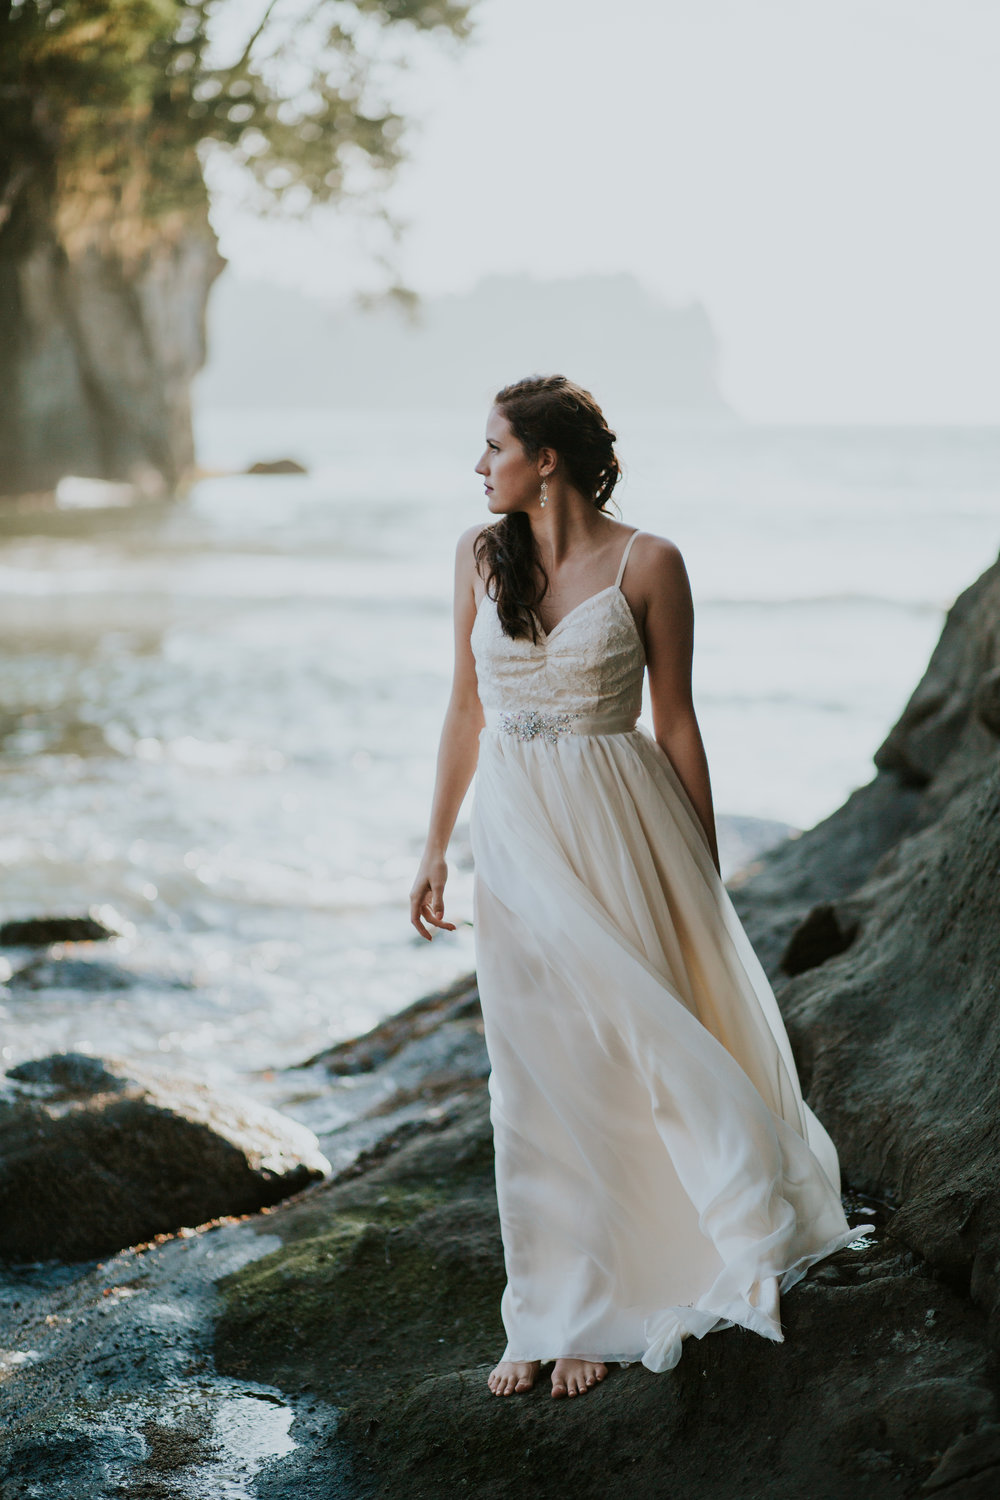 Port-Angeles-Salt-Creek-beach-wedding-bride-PNW-olympic-peninsula-photographer-Kayla-Dawn-Photography-outdoors-golden-hour-dancer-dress (36).jpg